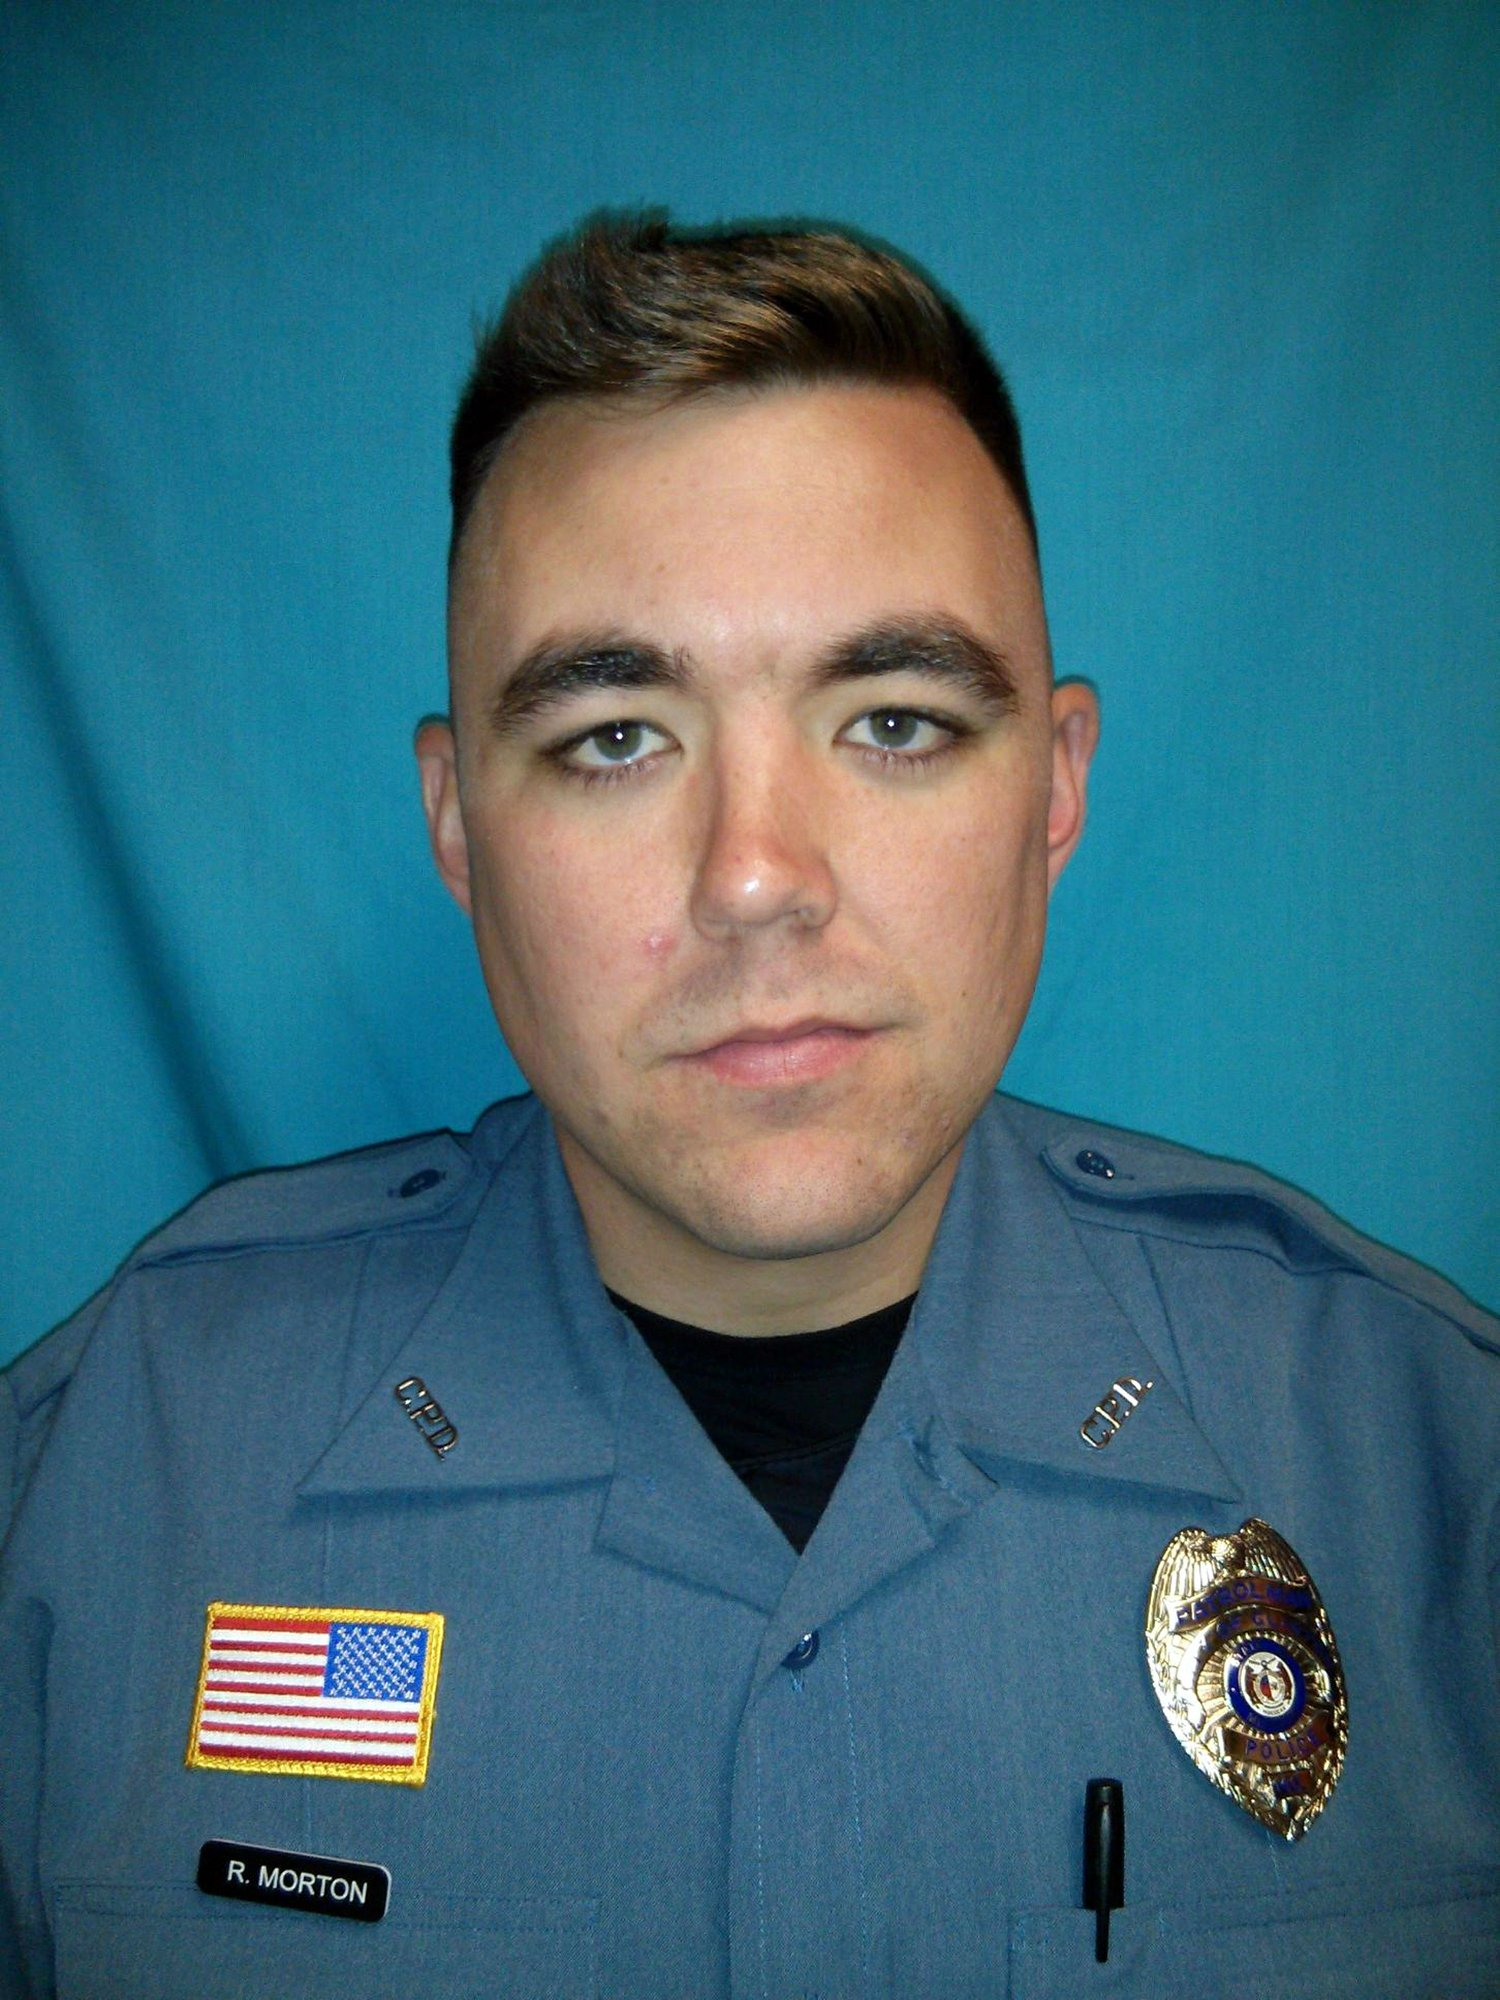 Missouri officer described being unable to move before dying